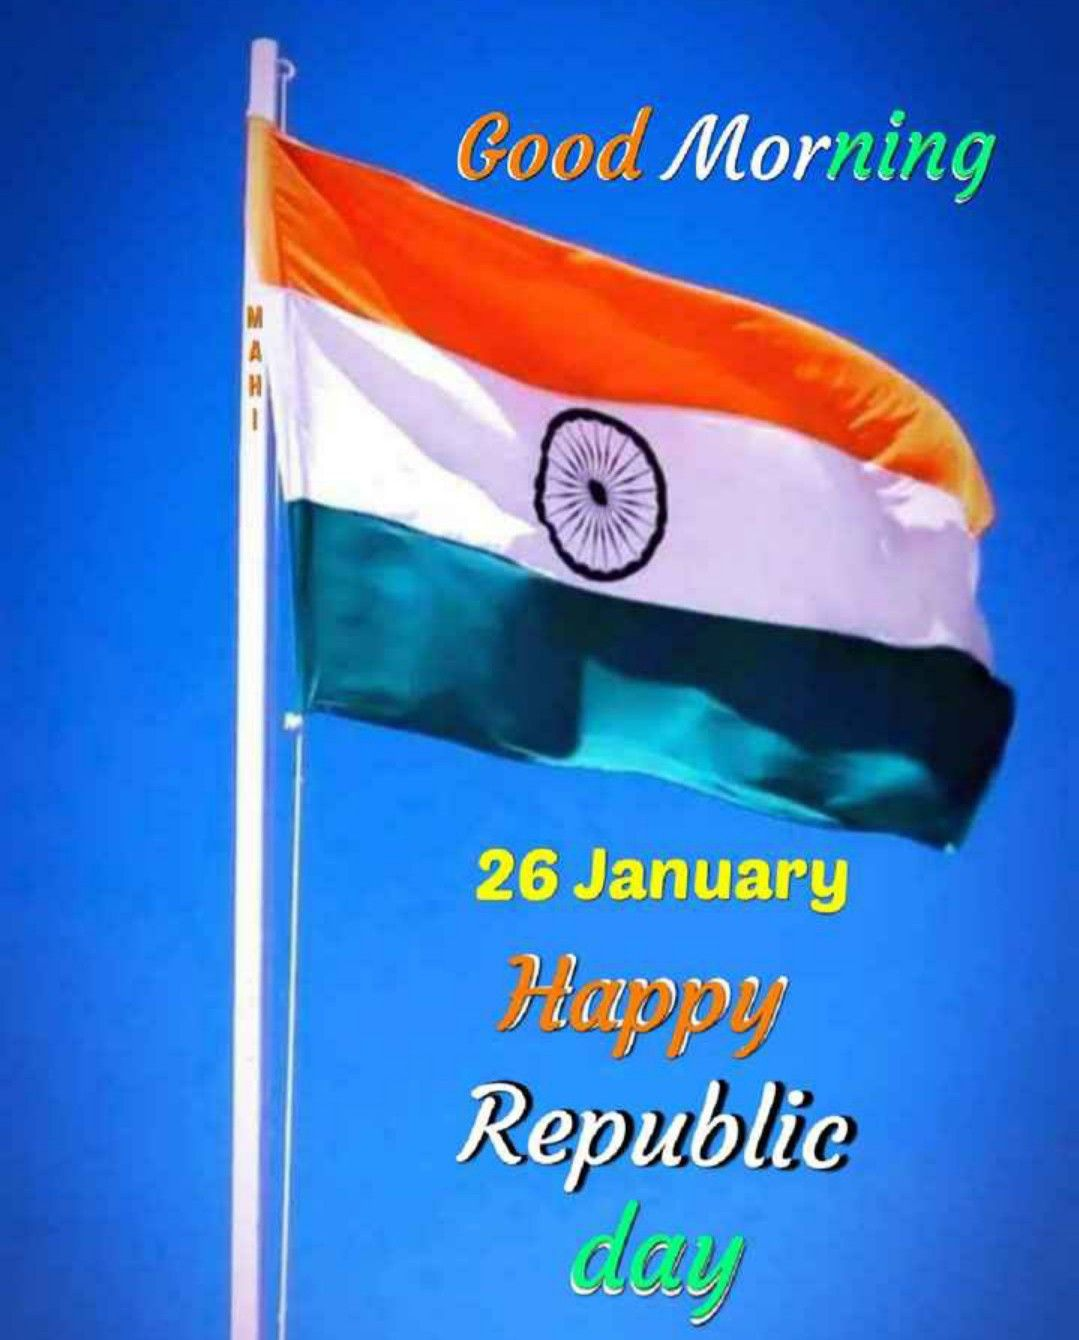 Pin By Sireesha Nair On Festival Republic Day Good Morning Happy Independence Day Wallpaper Gif good morning happy republic day